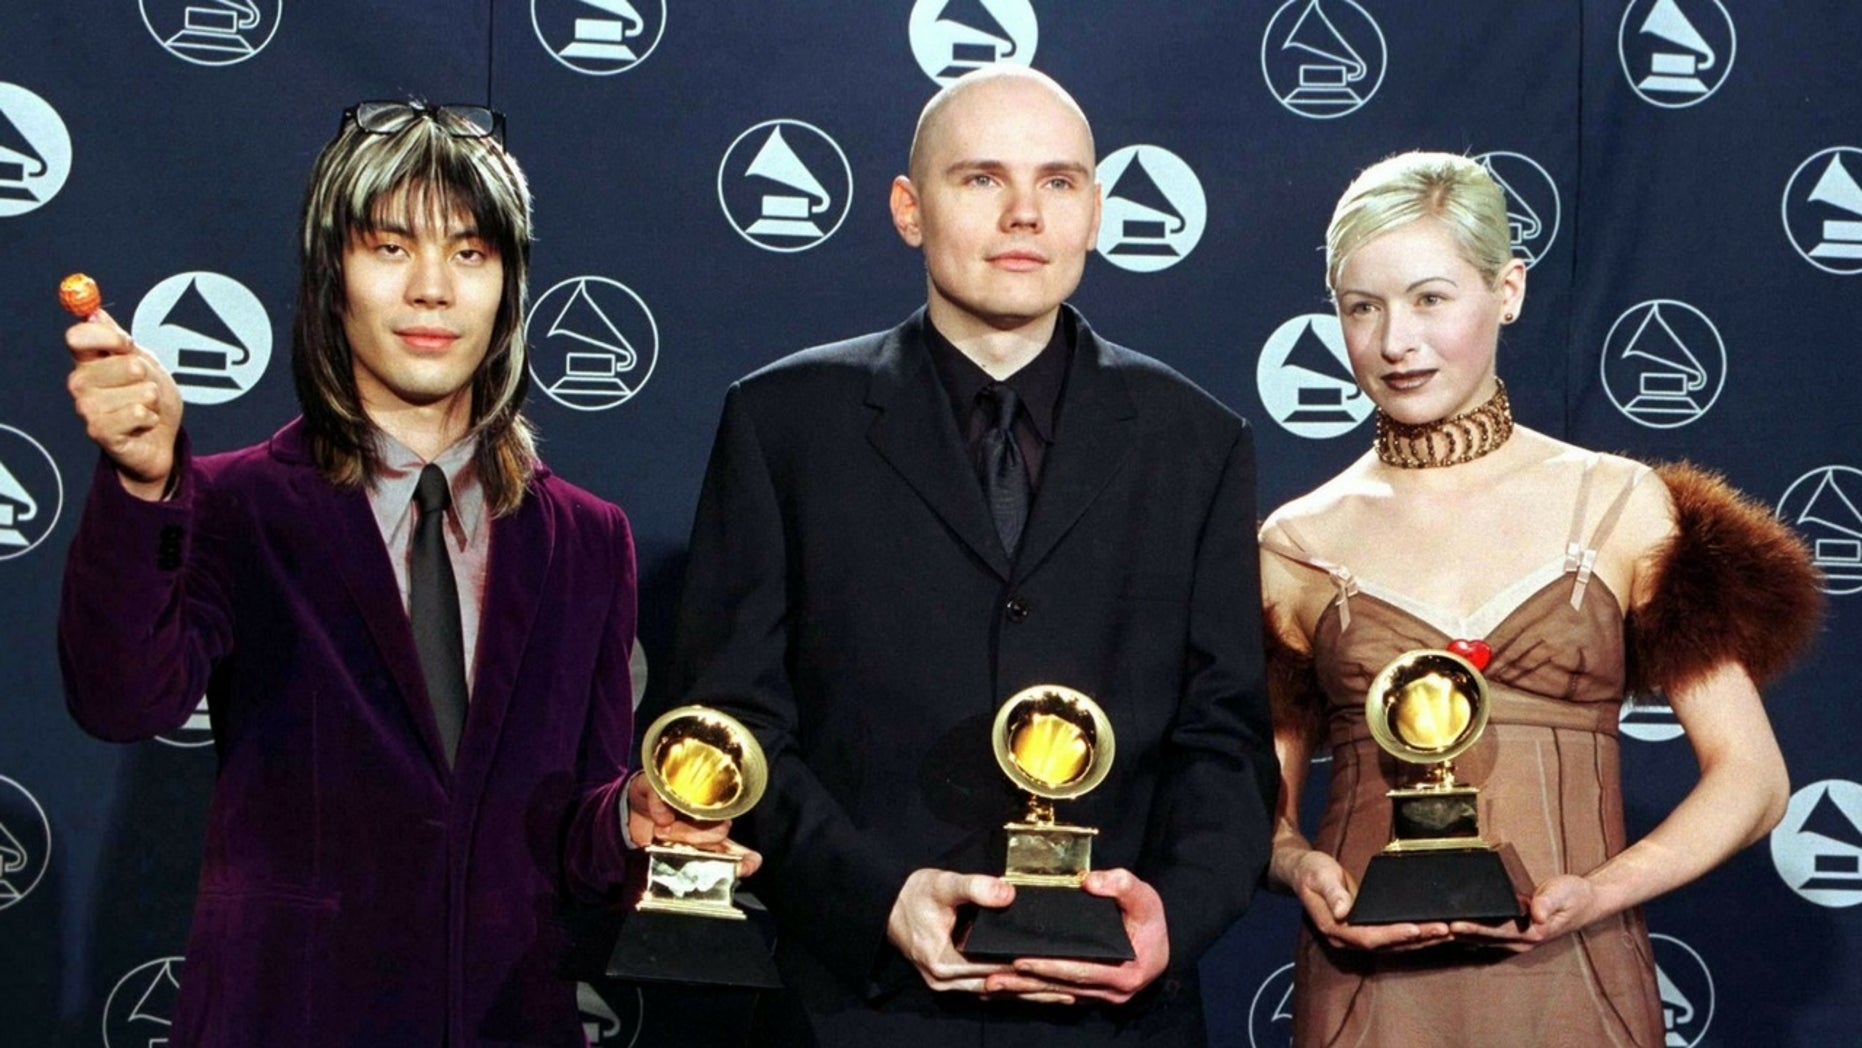 D'arcy Wretzky (right) claims she was not invited to The Smashing Pumpkins reunion.